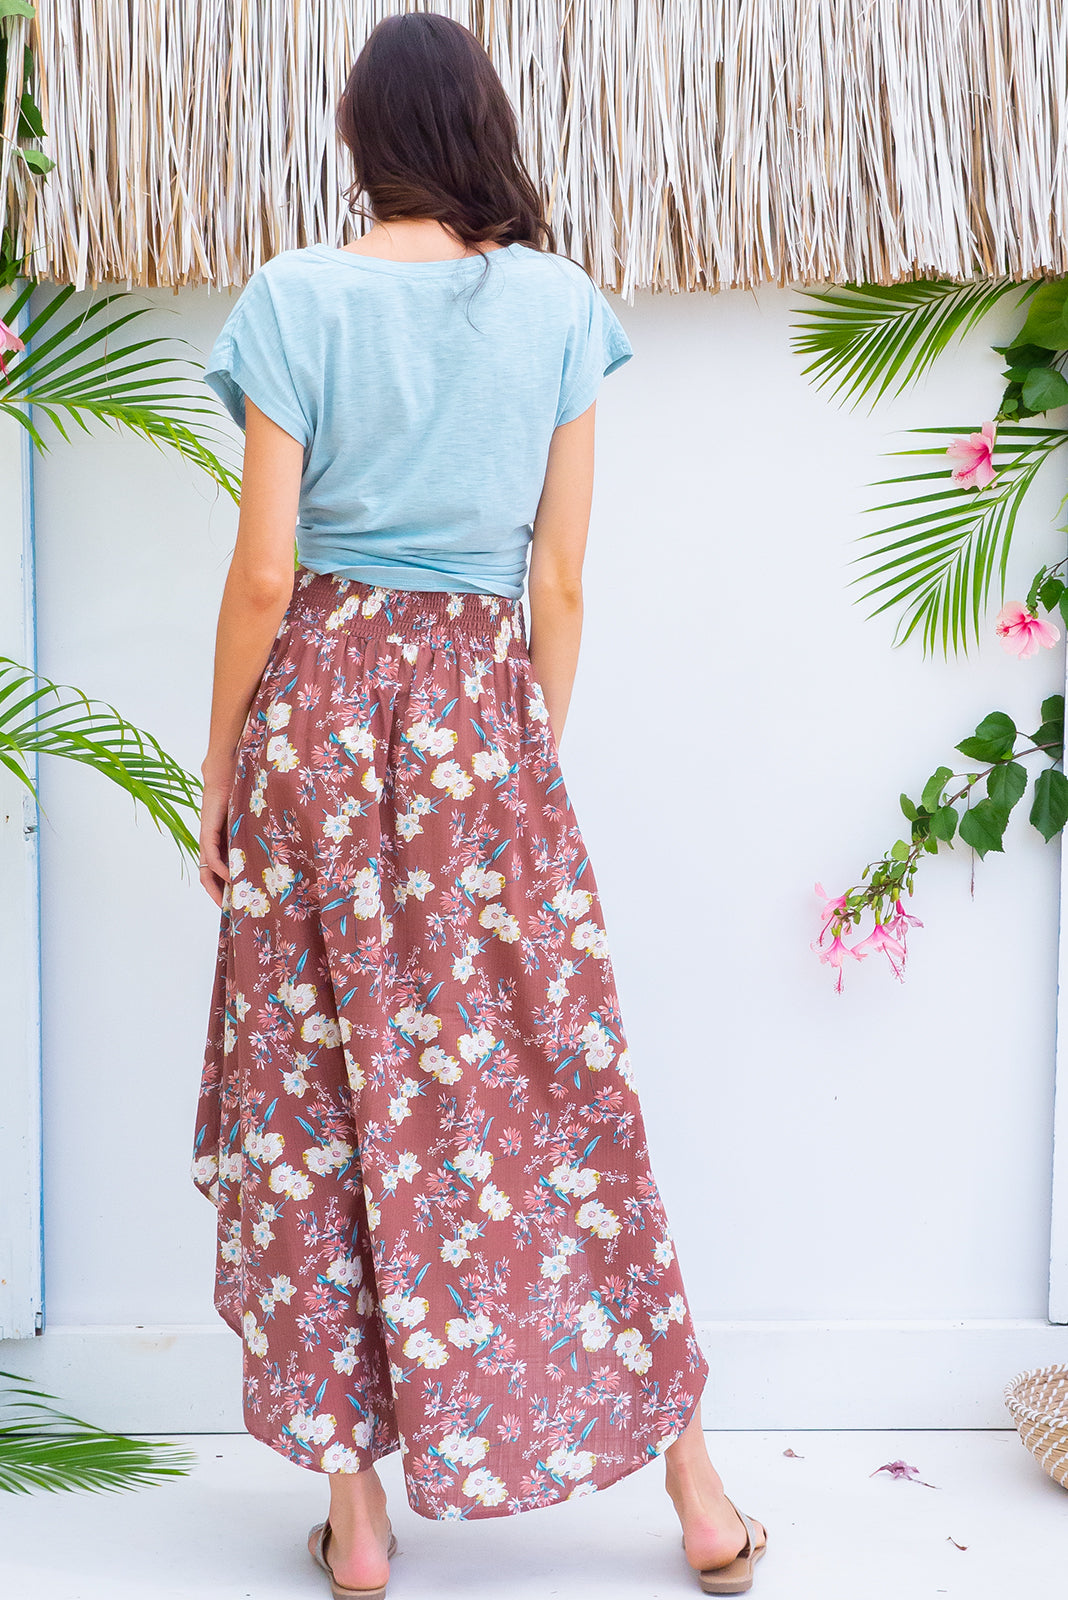 Sails Nutmeg Maxi Skirt with a soft ruched elastic back and pockets in a gorgeous soft terracotta colour with a delicate floral cotton rayon blend fabric